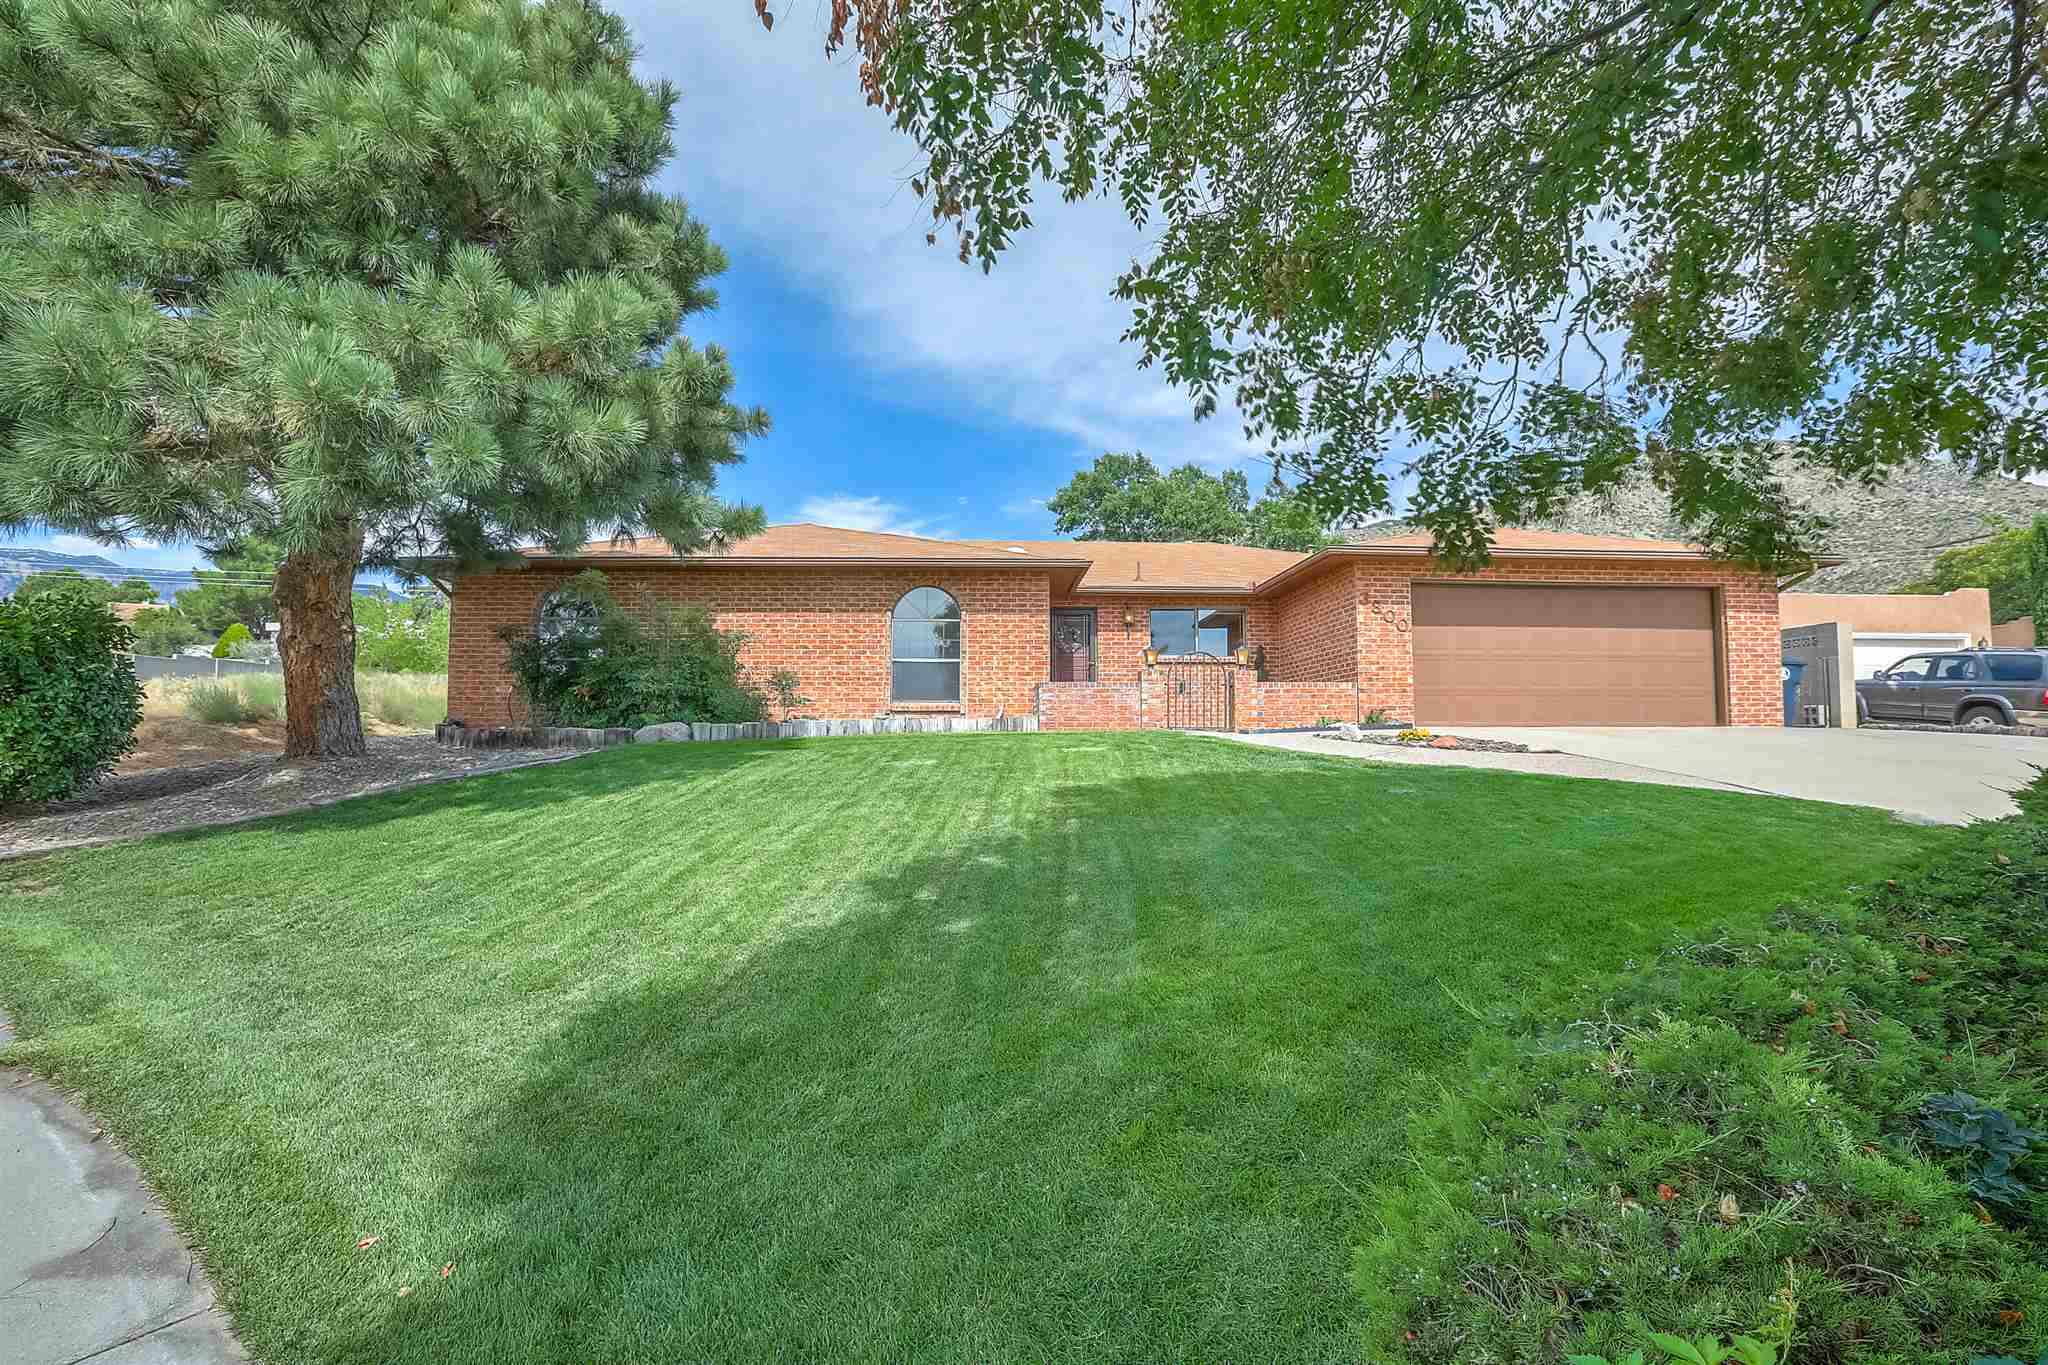 Lovingly cared for one-owner, single level brick ranch in the Foothills! Cool off from the summer heat in a lush backyard oasis with gunite swimming pool, west facing covered patio, and mature landscaping. Inside there are 4 generous bedrooms, 3 bathrooms, great mid-century structure with connected living and dining room, and huge family room with wet bar.  Family room french doors provide excellent flow out to the back patio - perfect for entertaining guests or relaxing family evenings.  Property backs to open space with views both east and west. Incredible potential!